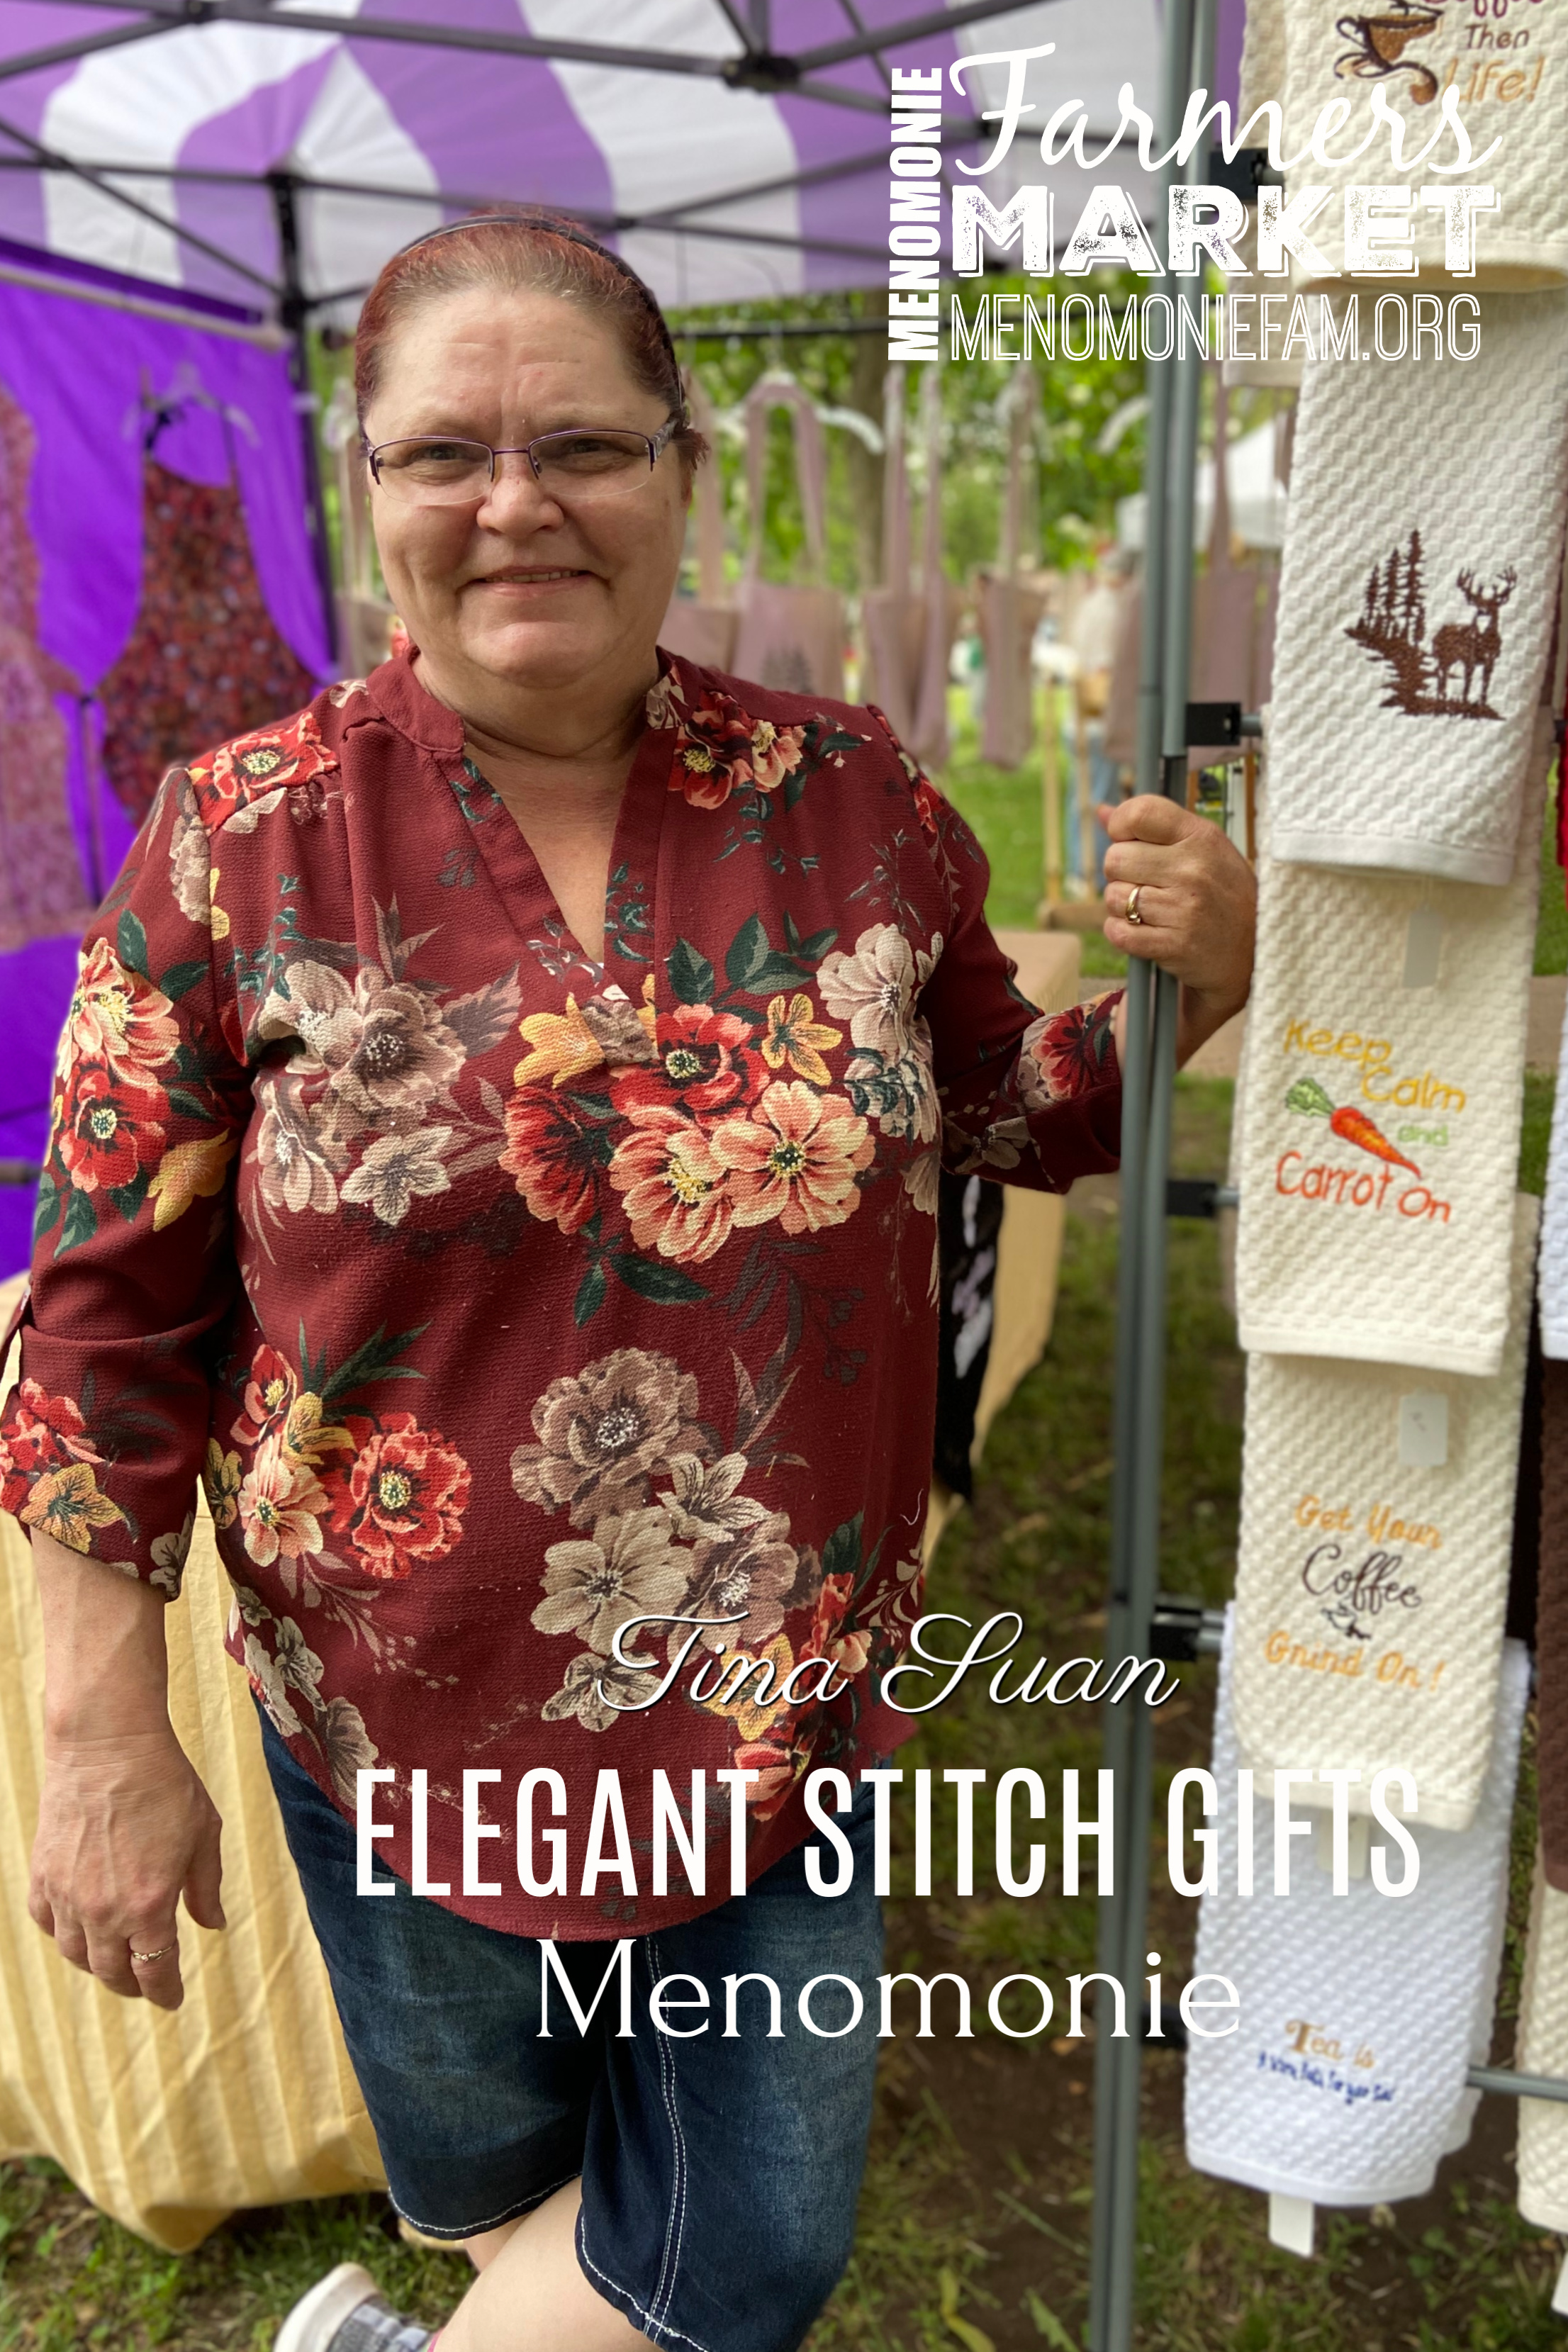 Elegant Stitch Gifts